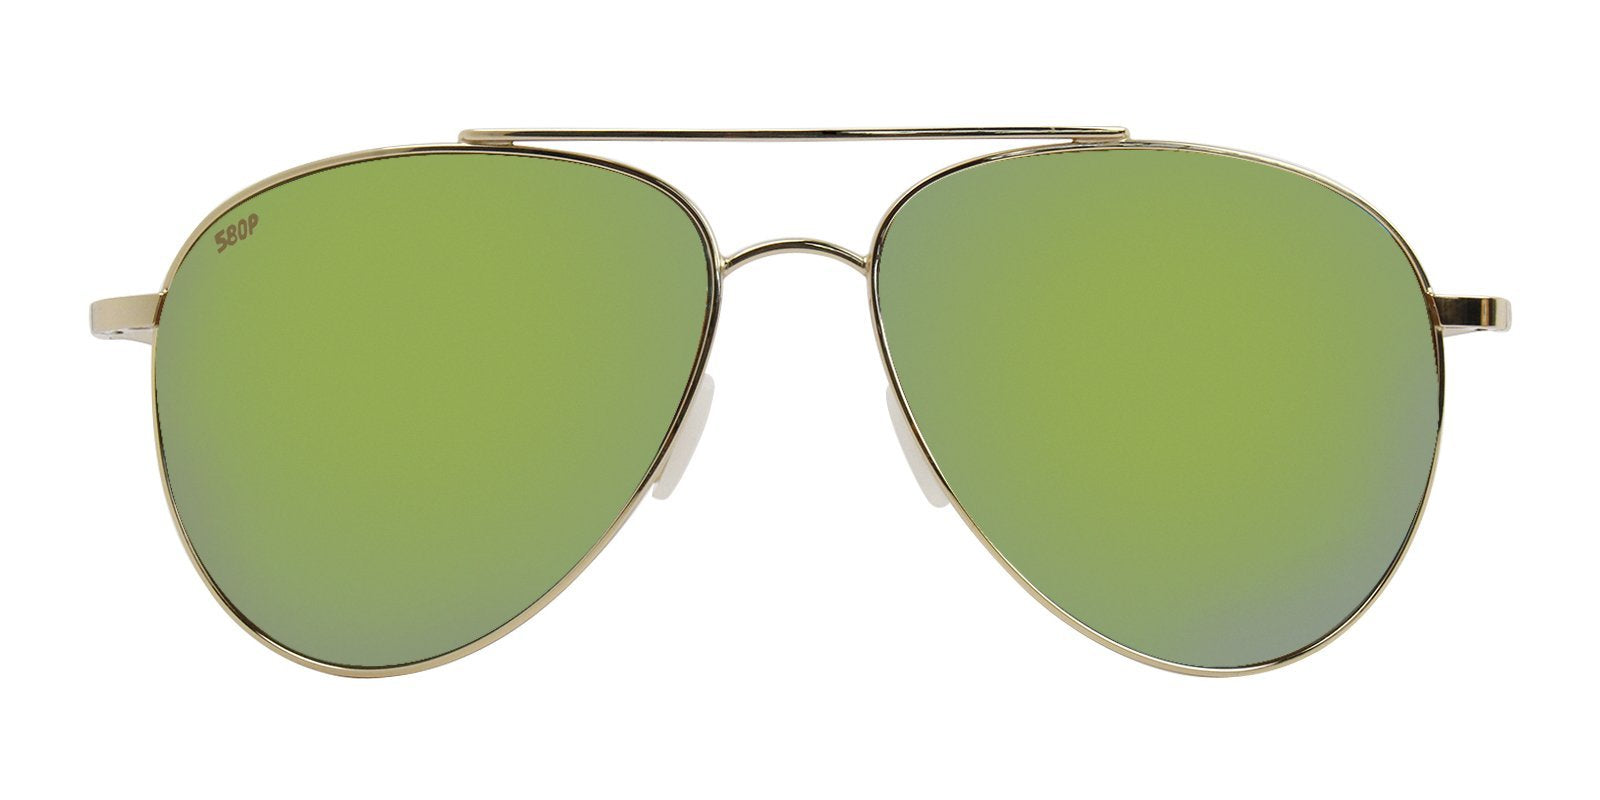 Costa Del Mar - Cook Gold/Green Mirror Polarized Aviator Unisex Sunglasses-Sunglasses-Designer Eyes